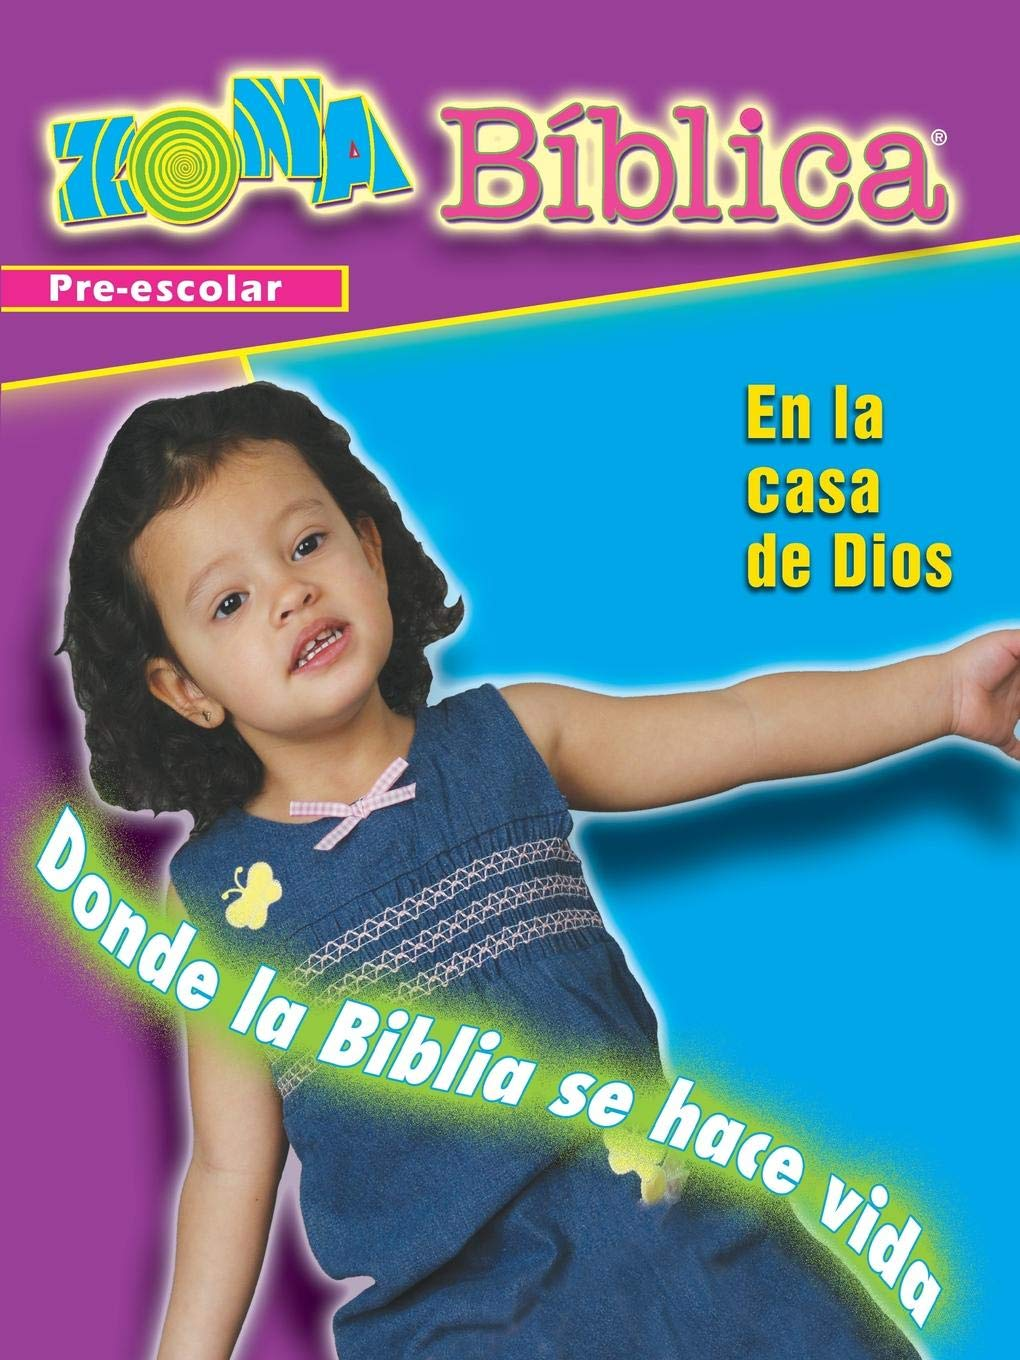 Download Zona Biblica En la Casa de Dios Preschool Leader's Guide: Zona Biblica In God's House Preschool Leader's Guide Spanish ebook